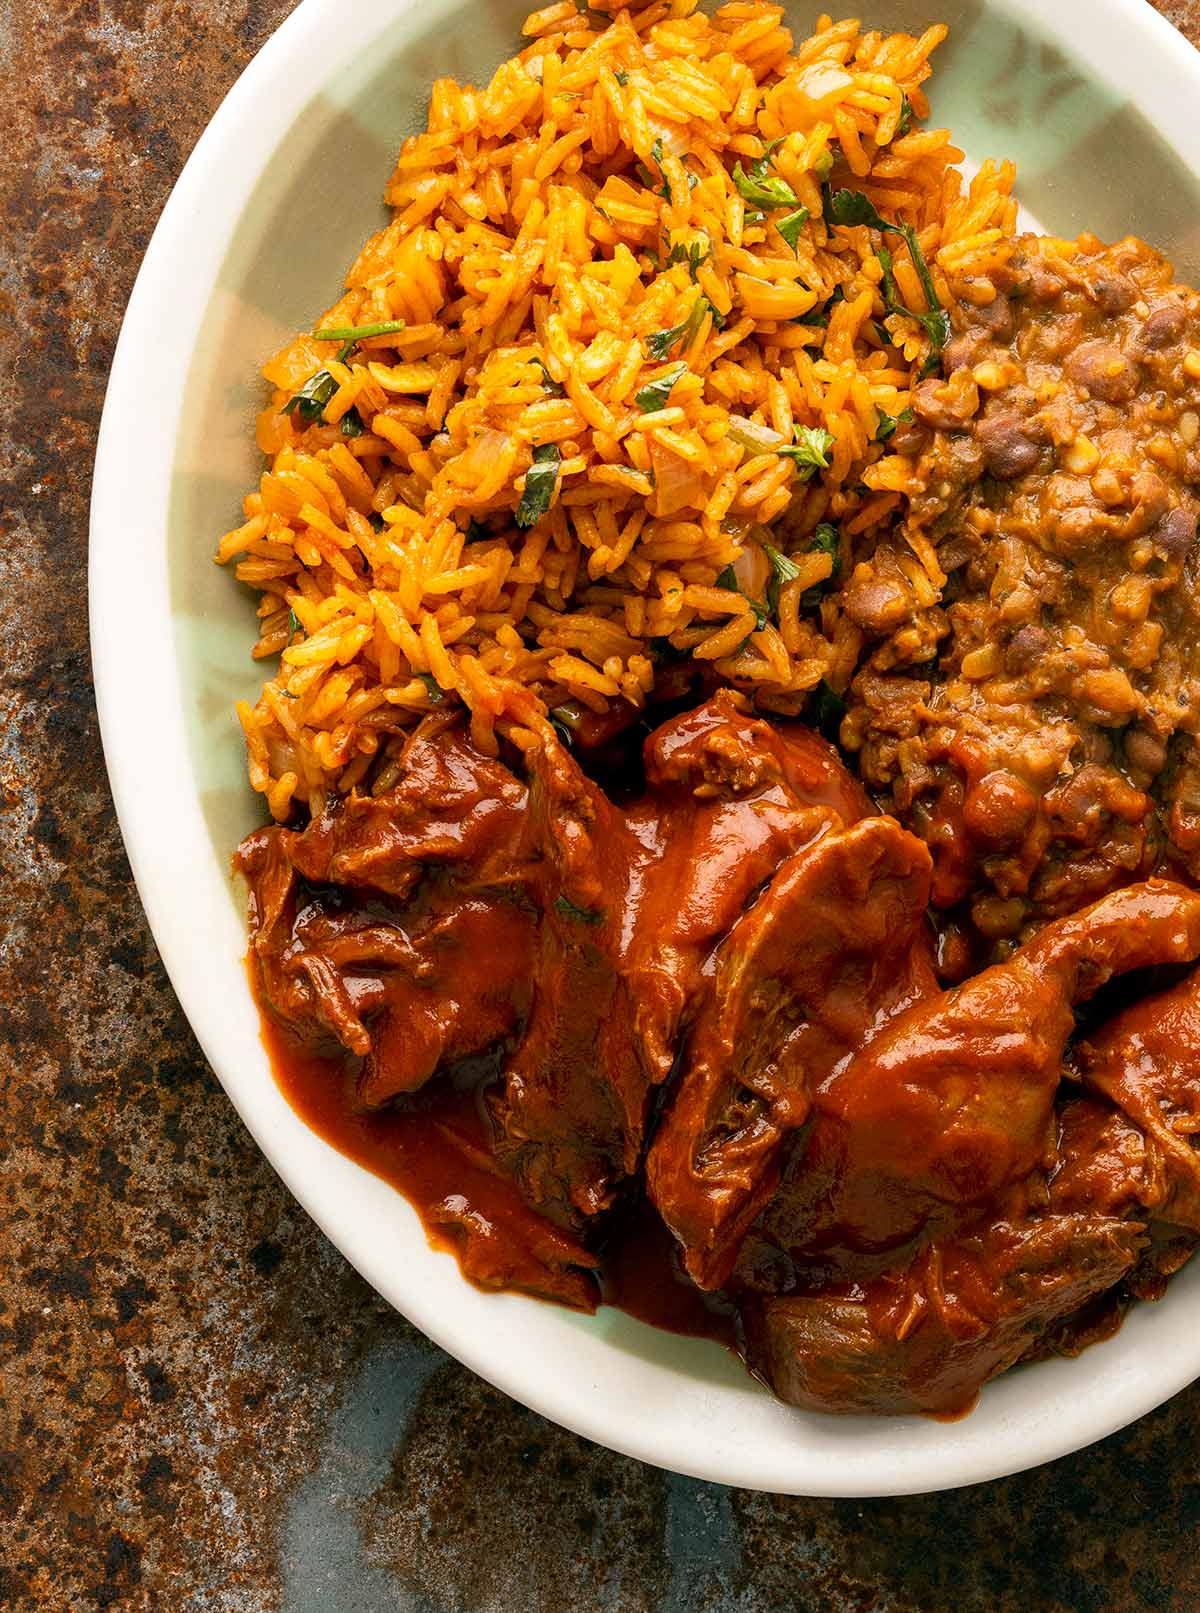 Closeup of the platter of rice, beans and carne con chile.